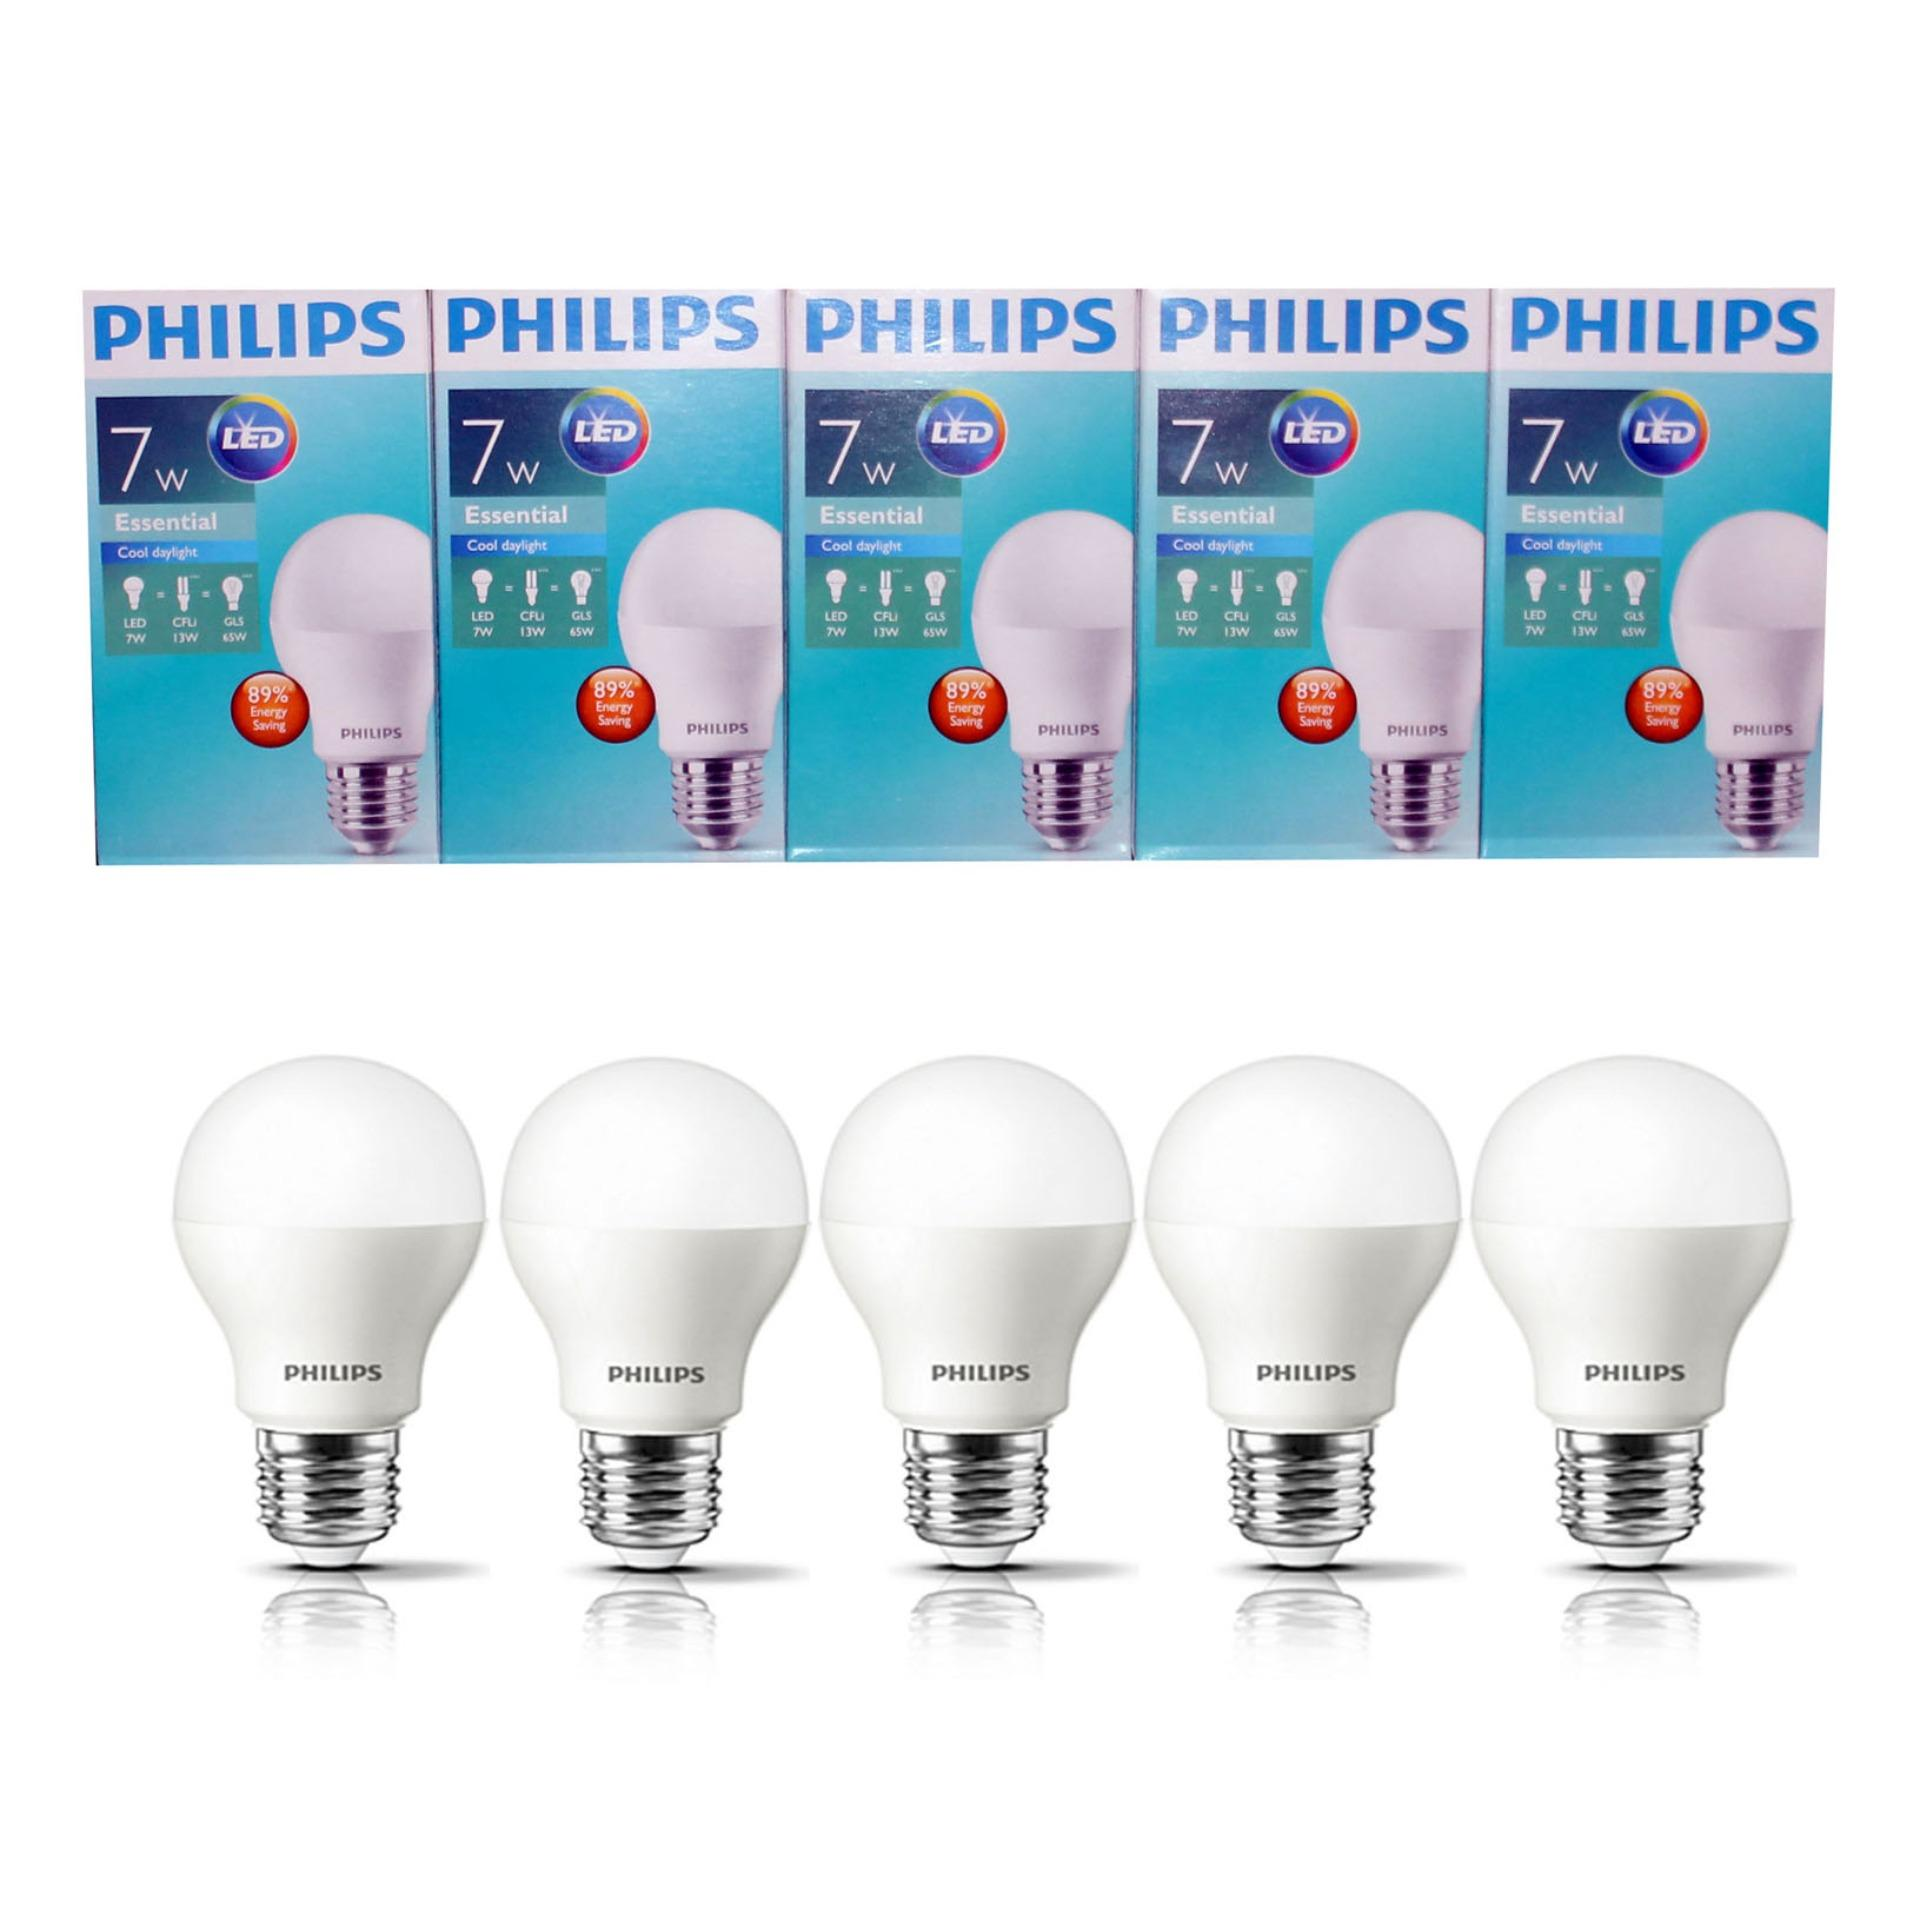 PHILIPS Lampu Led Bulb Essential 7 Wat 7 W 7Watt 7W Paket 5 Pcs Putih